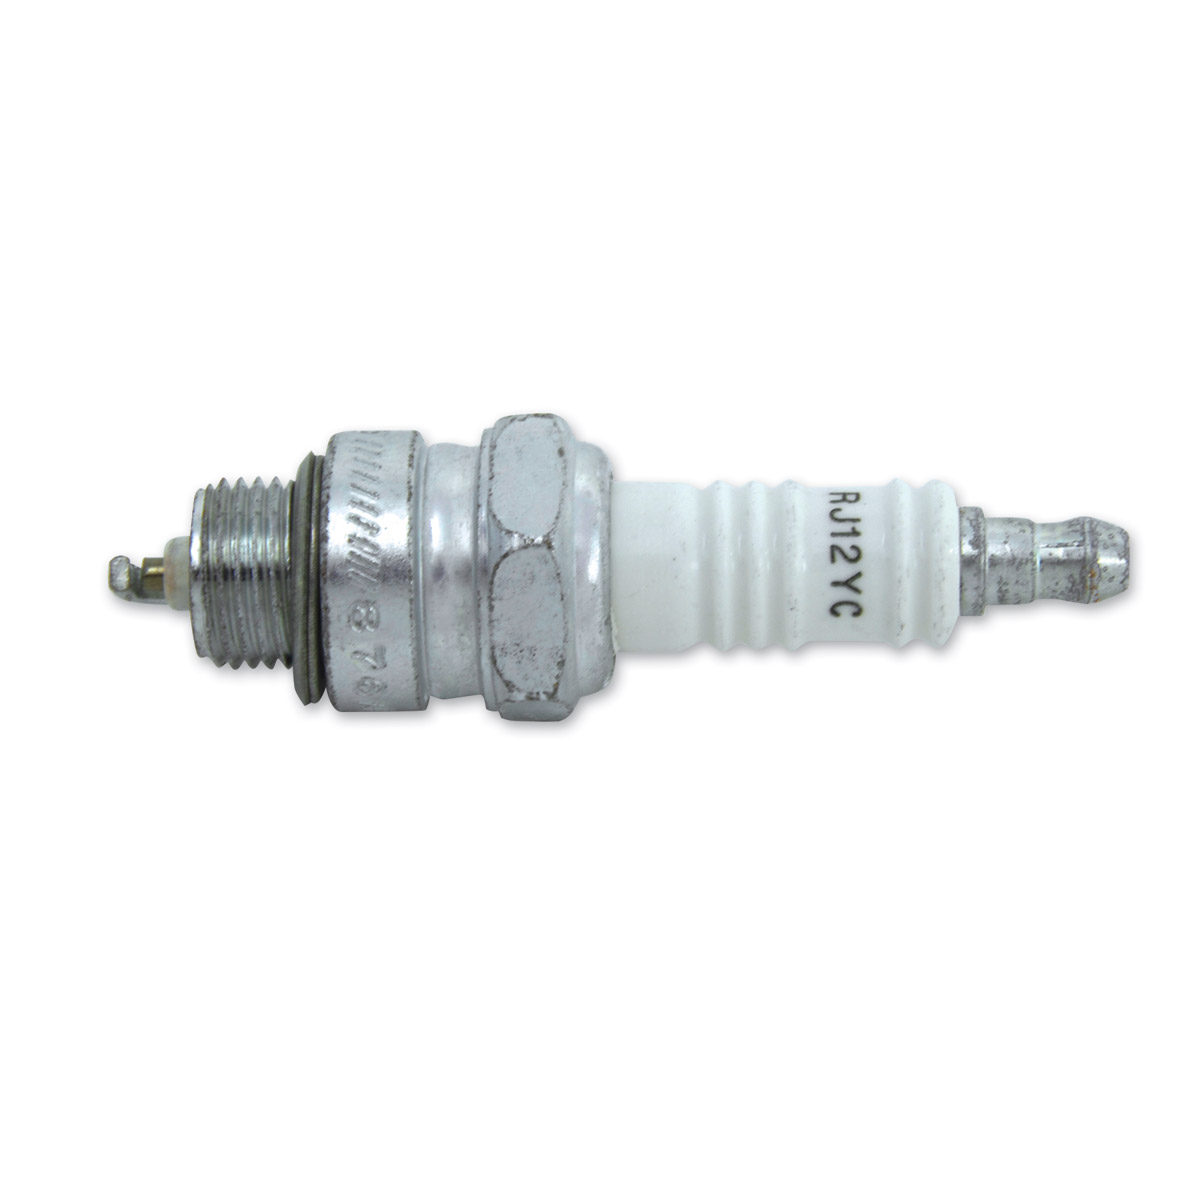 Champion Copper Plus J12YC Spark Plugs